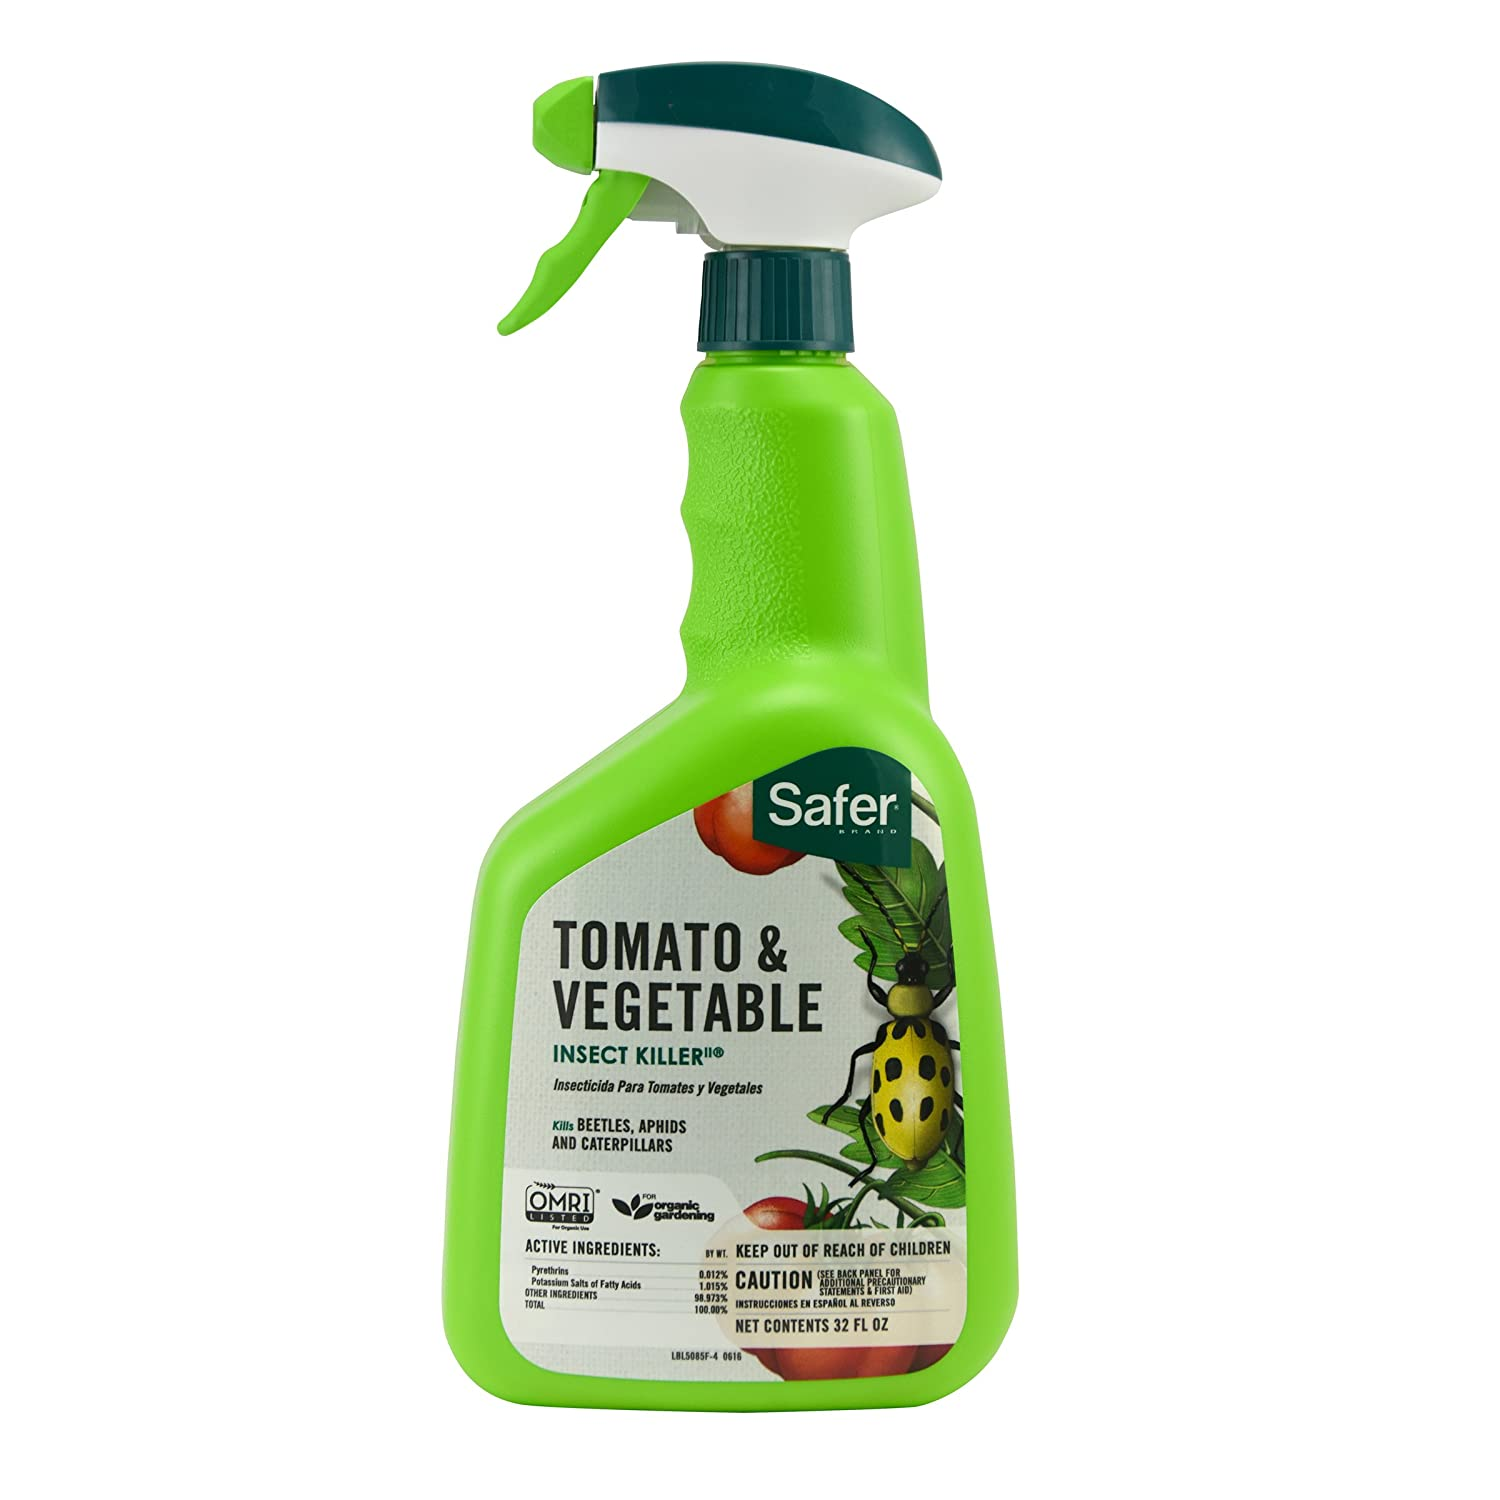 Amazon.com: WOODSTREAM LAWN & GRDN 683784 Ready to Use Safer Tomato And  Vegetable Insect Killer, 32 oz: Garden & Outdoor